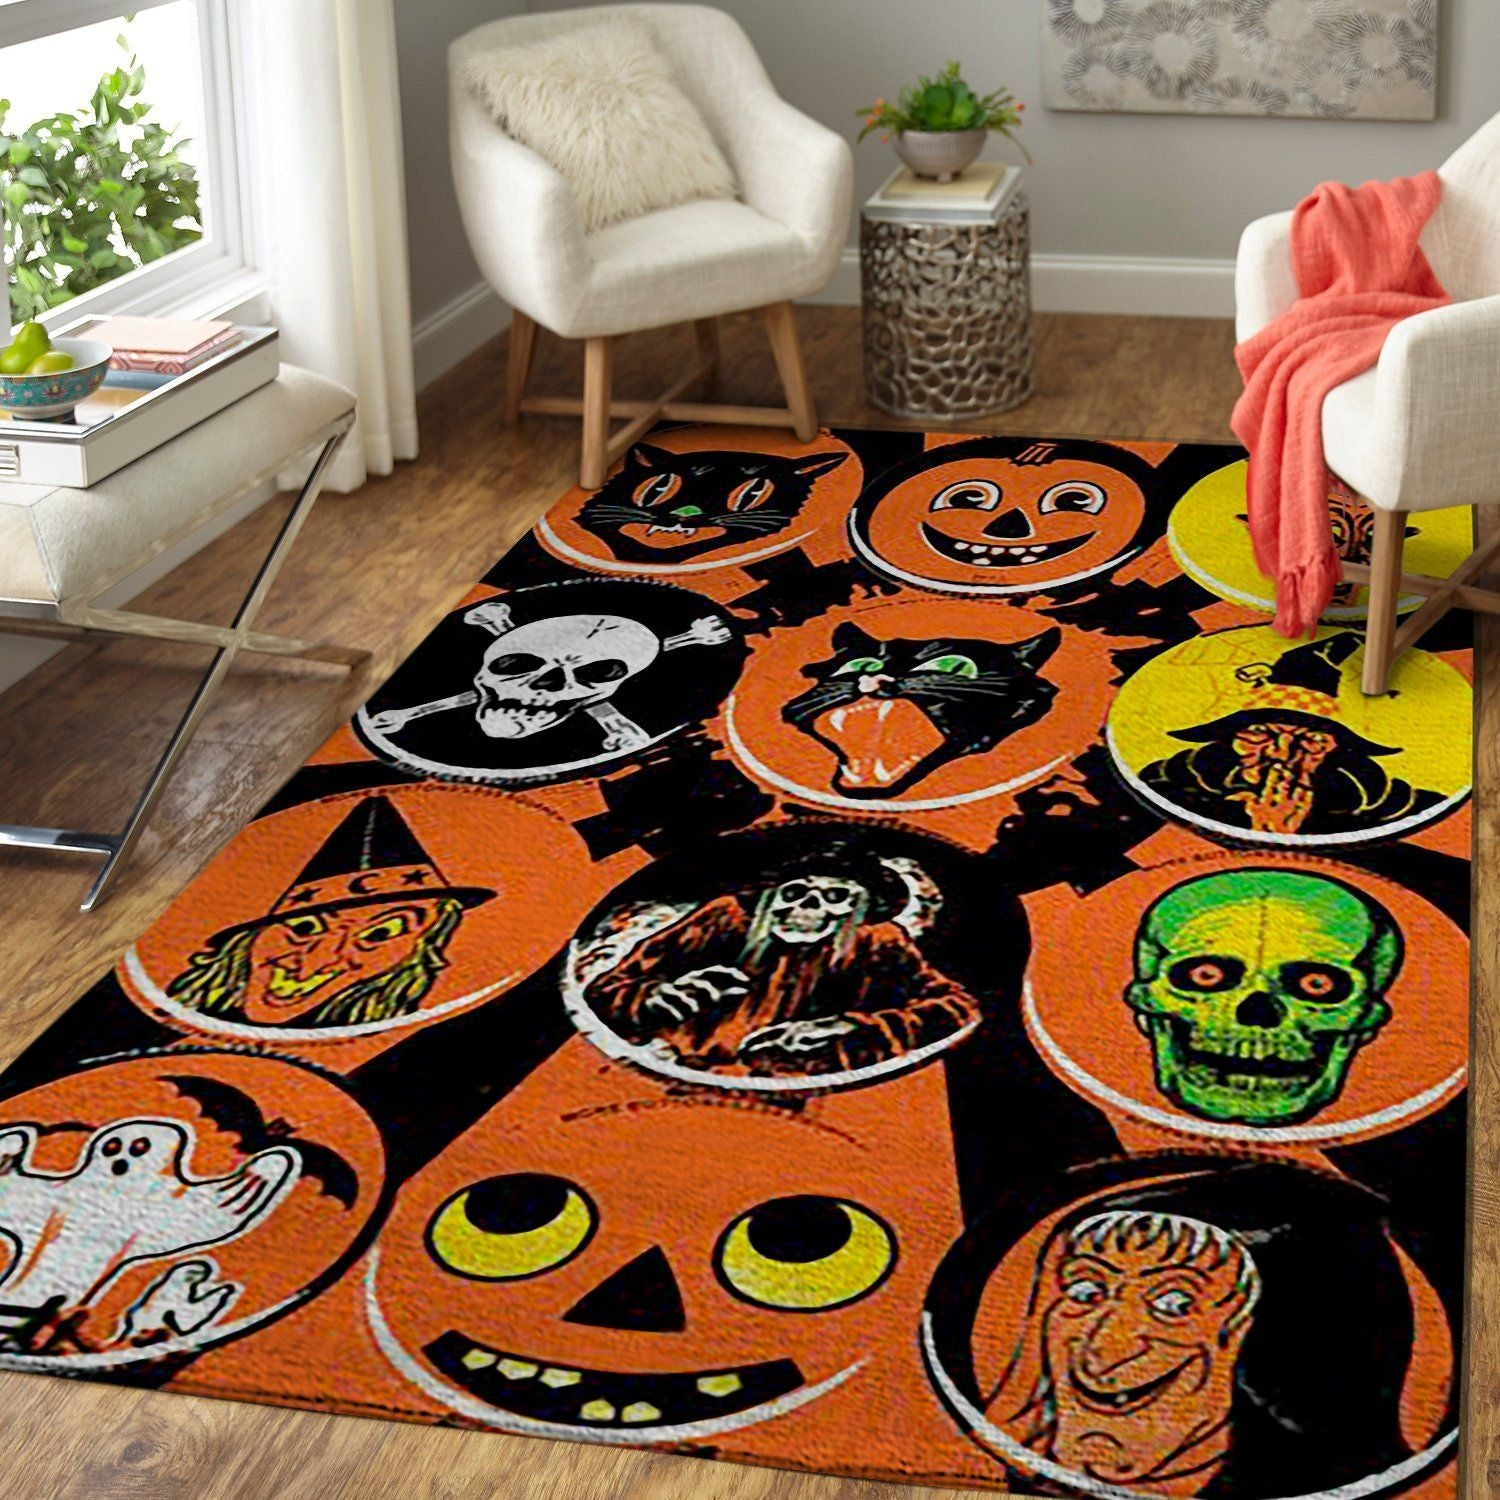 Limited Edition Halloween  Area Rug Floor Decor LSB190827